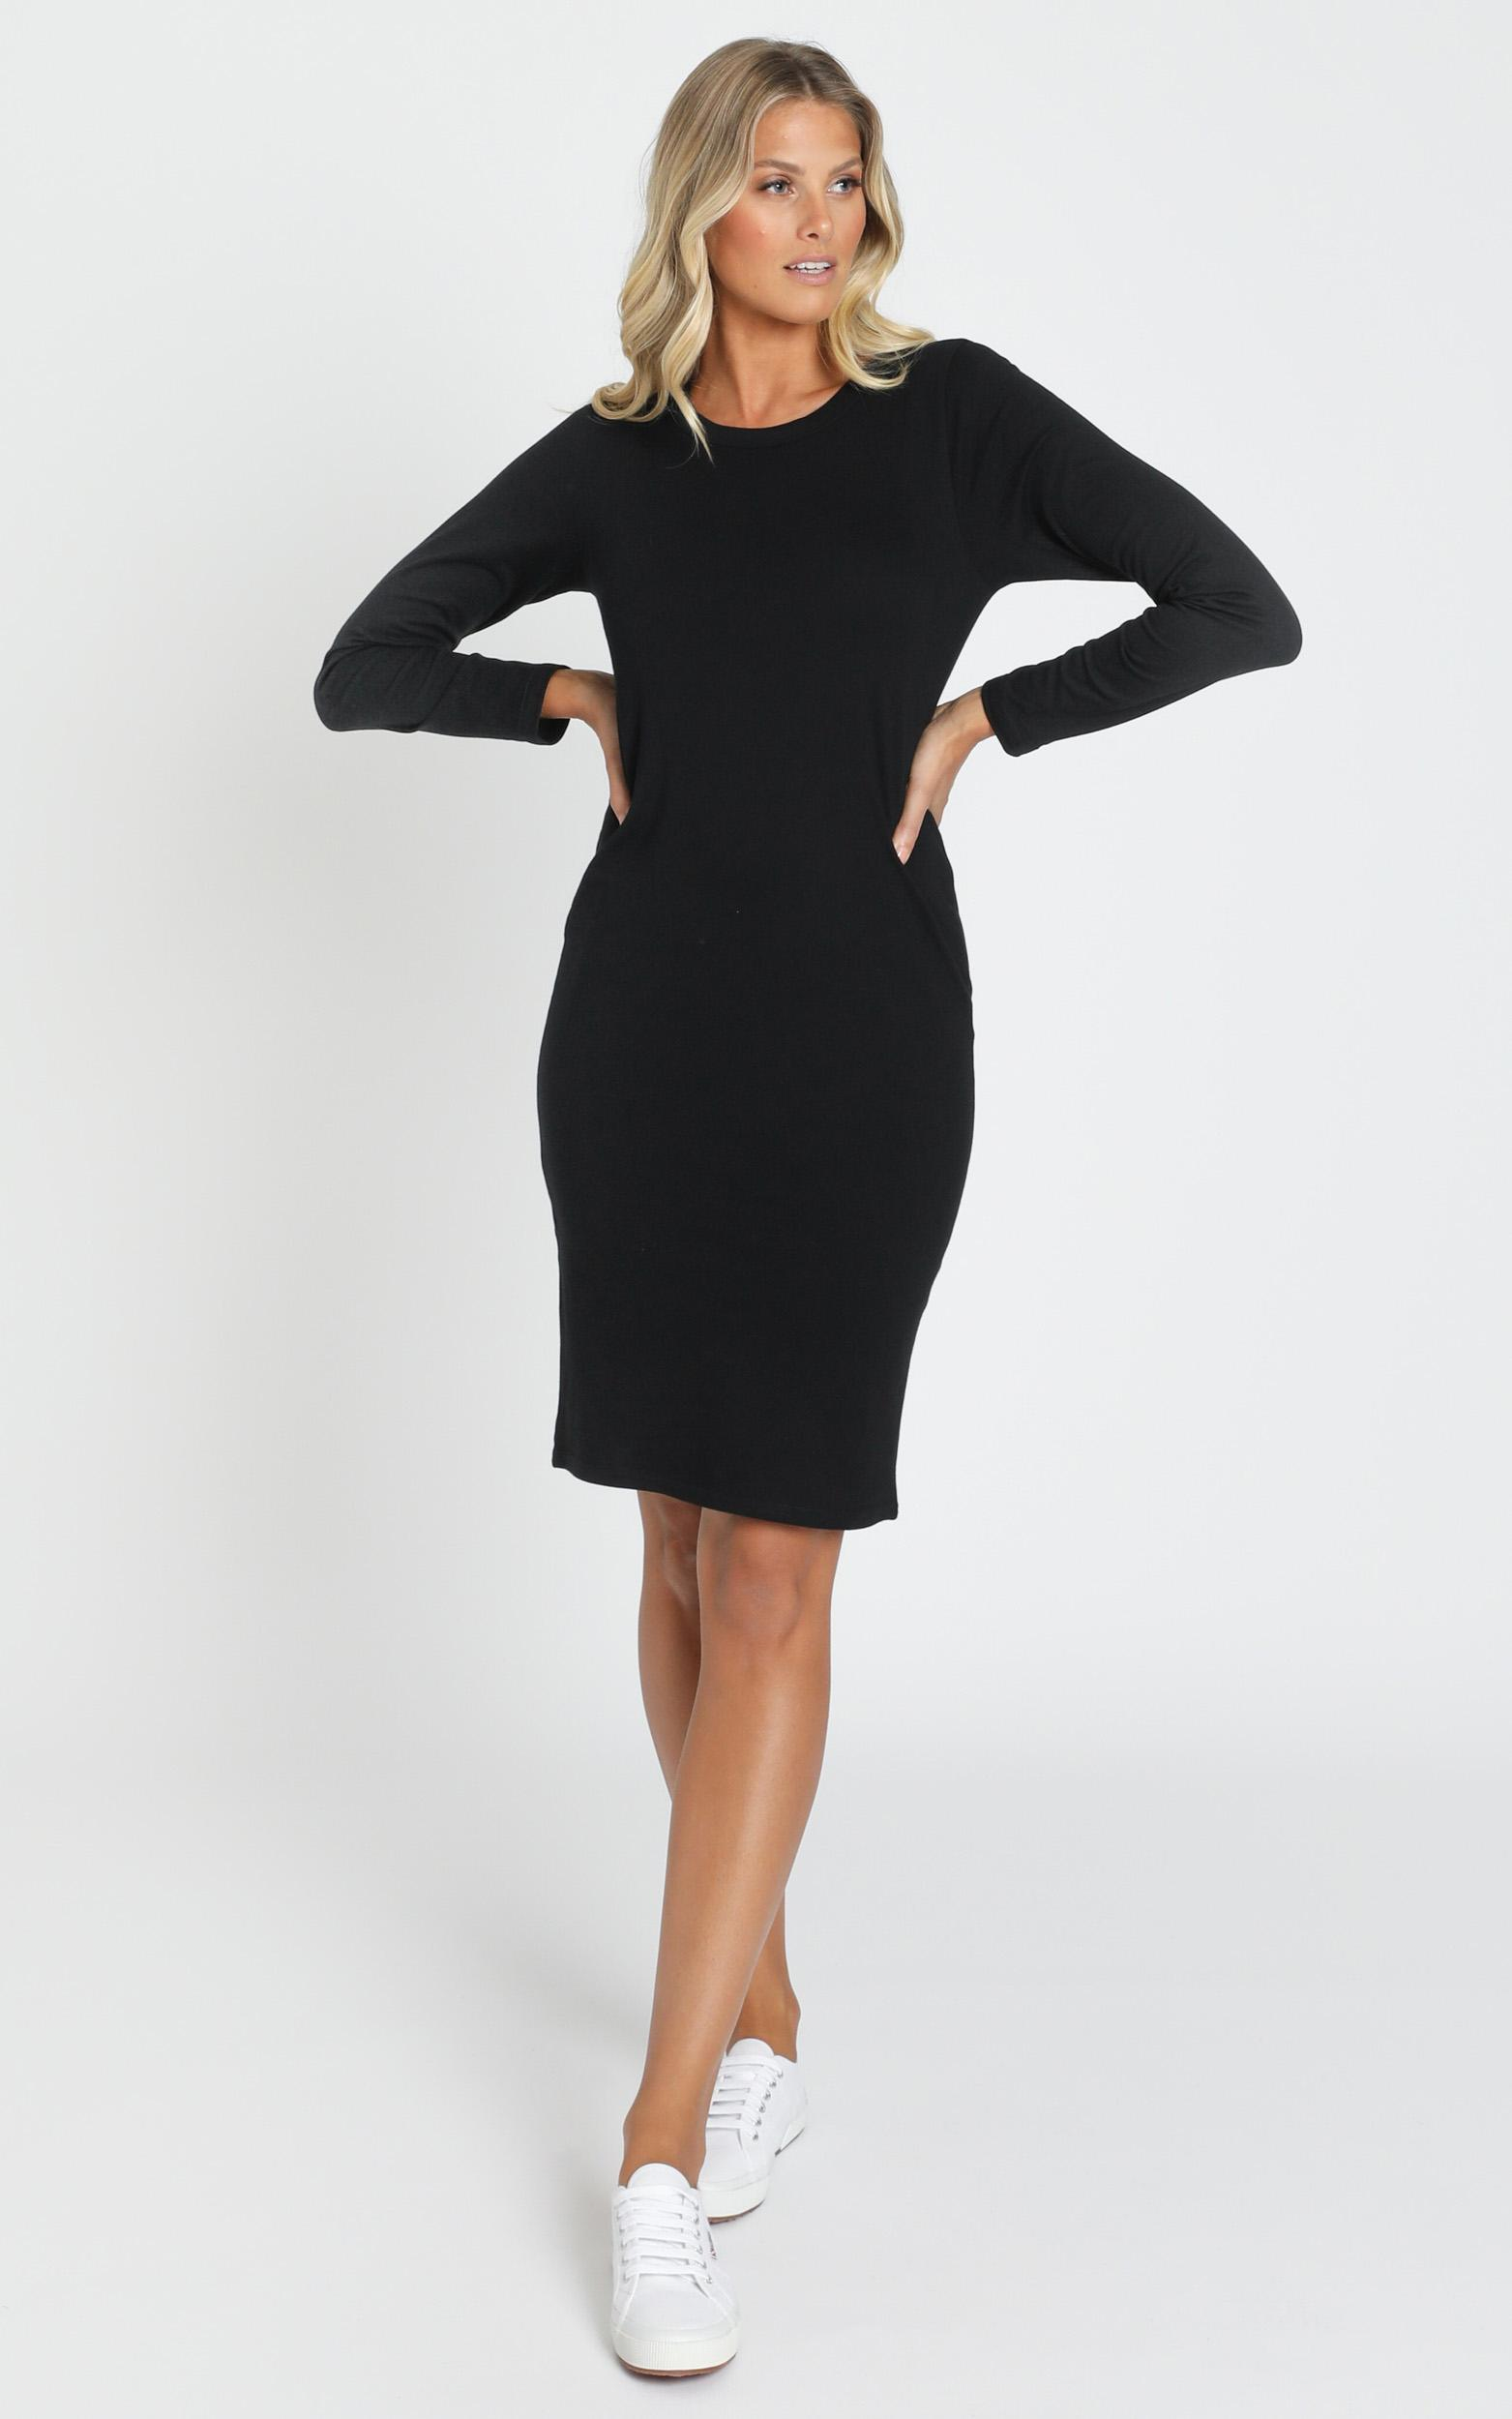 AS Colour - Mika Organic LS Tee Dress in Black - XS, Black, hi-res image number null